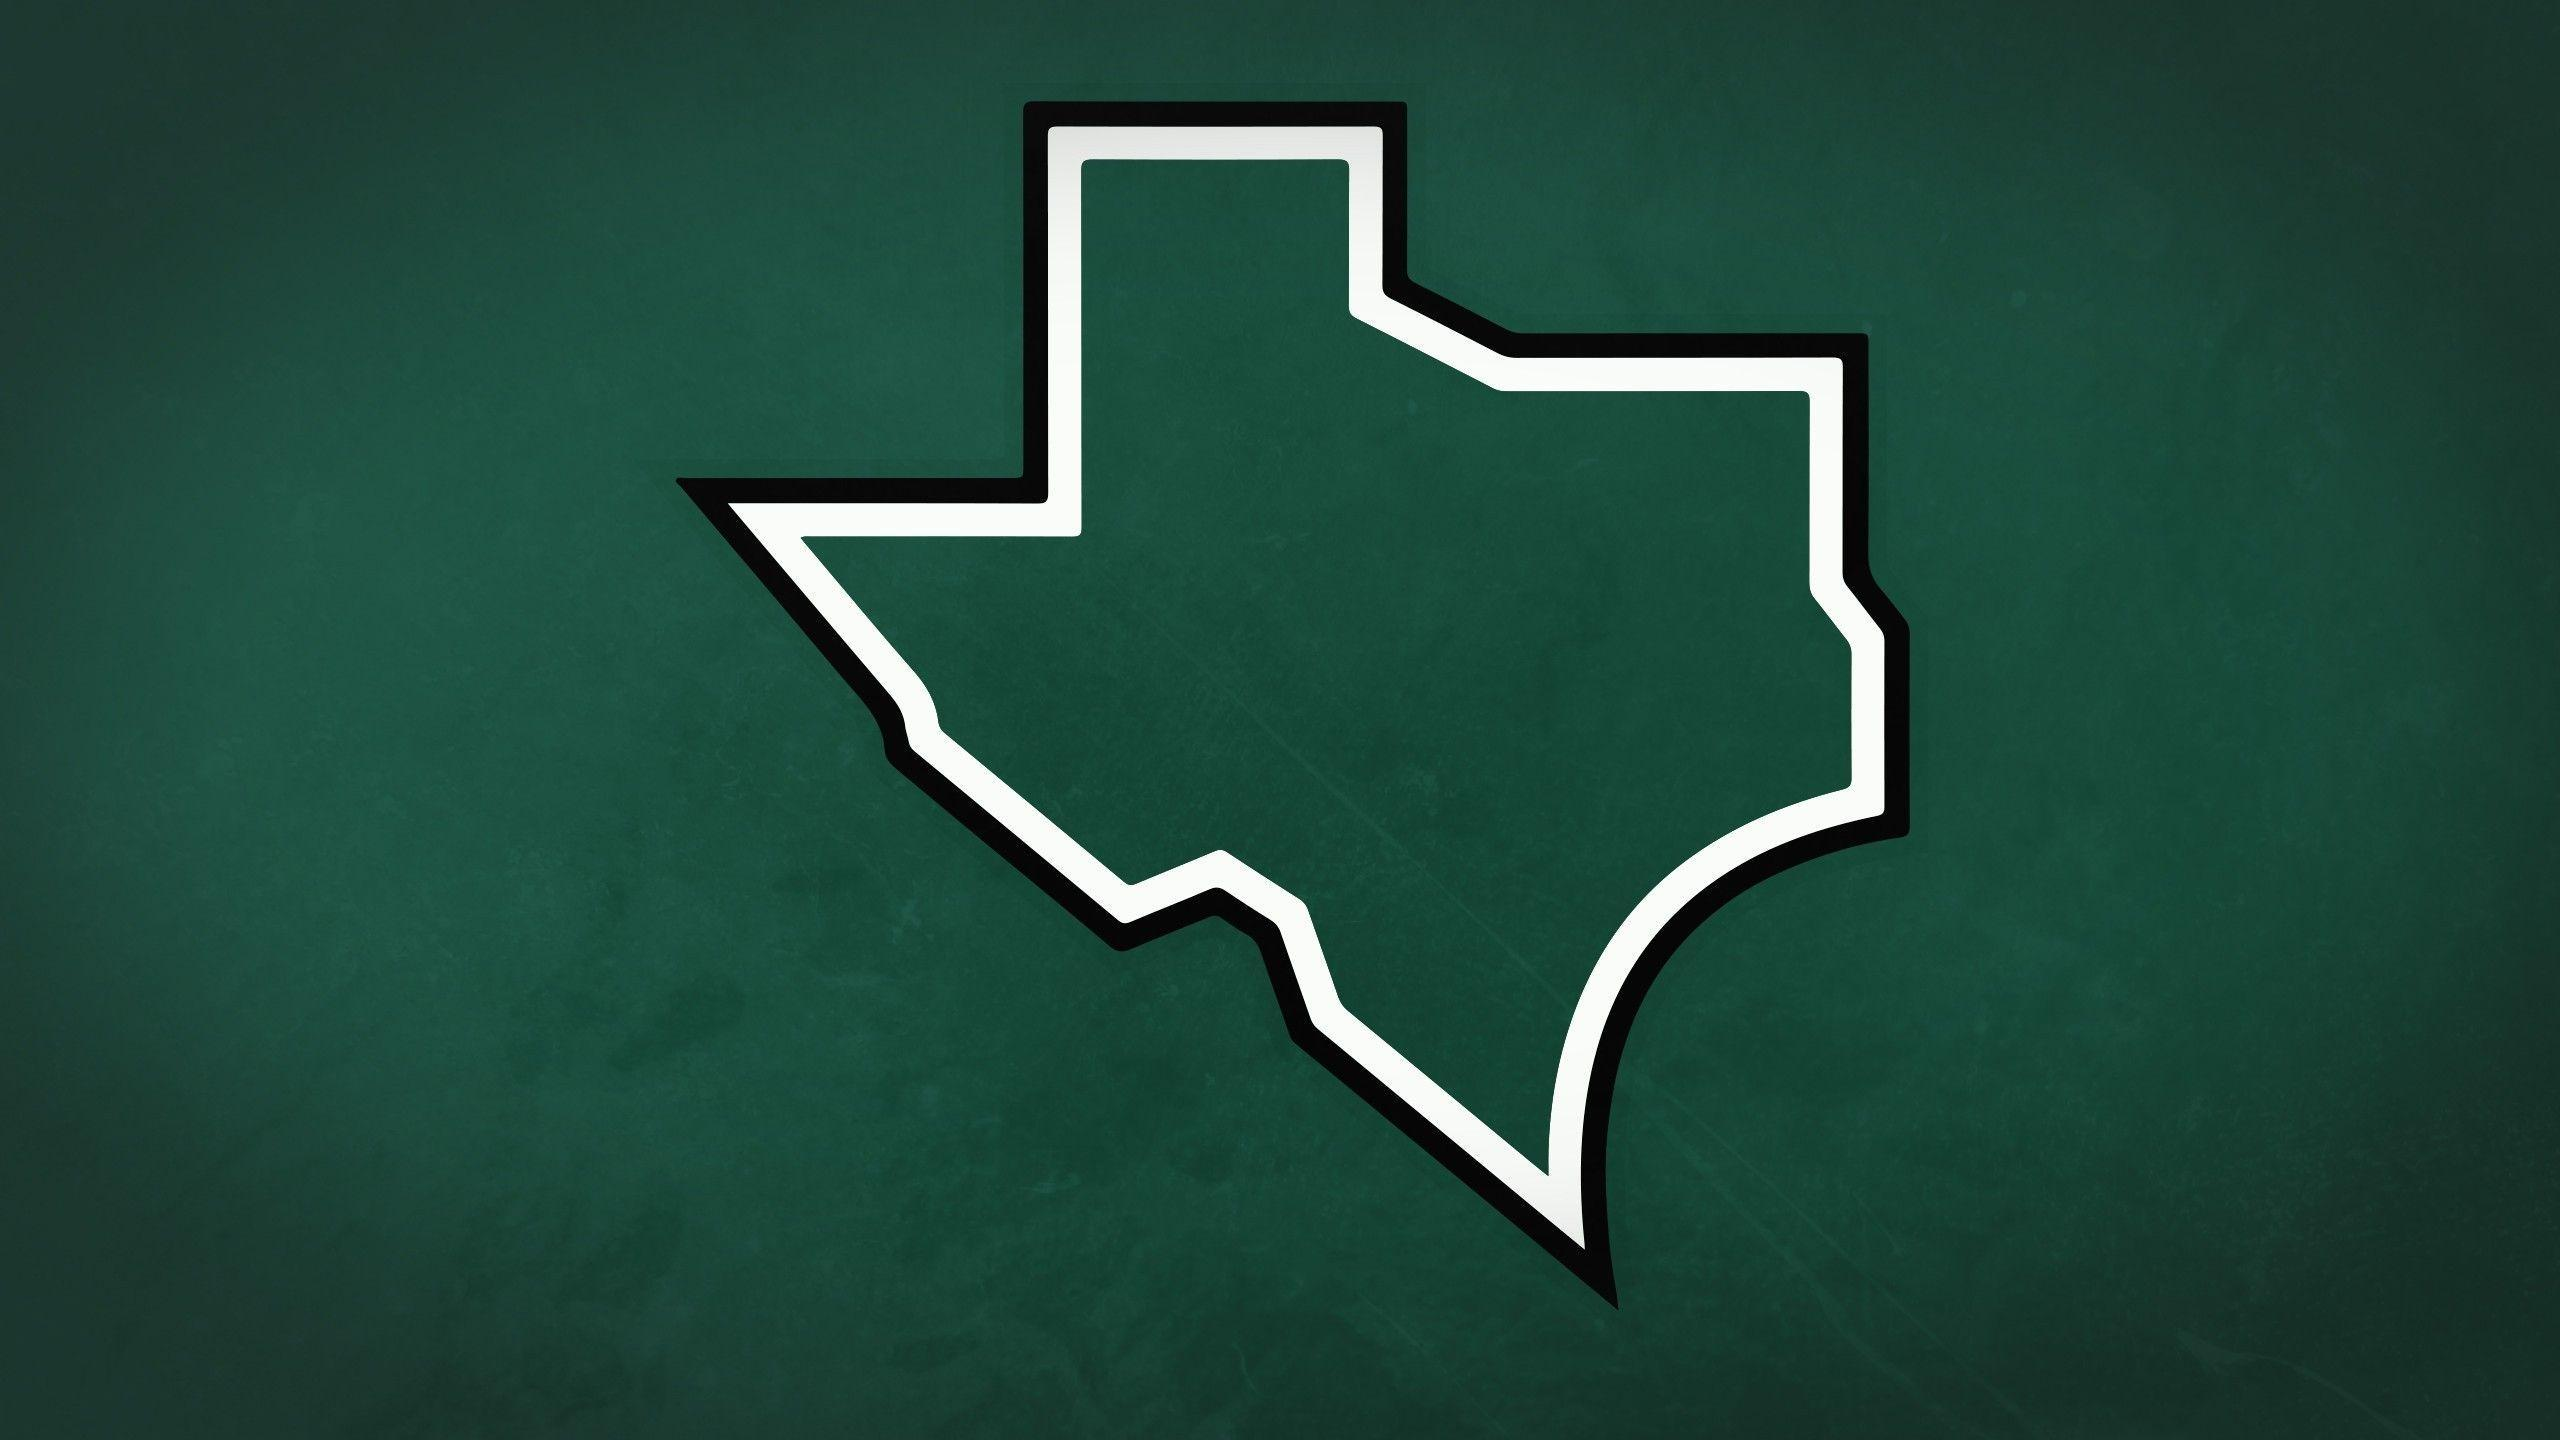 Dallas Stars HD Wallpaper - WallpaperSafari